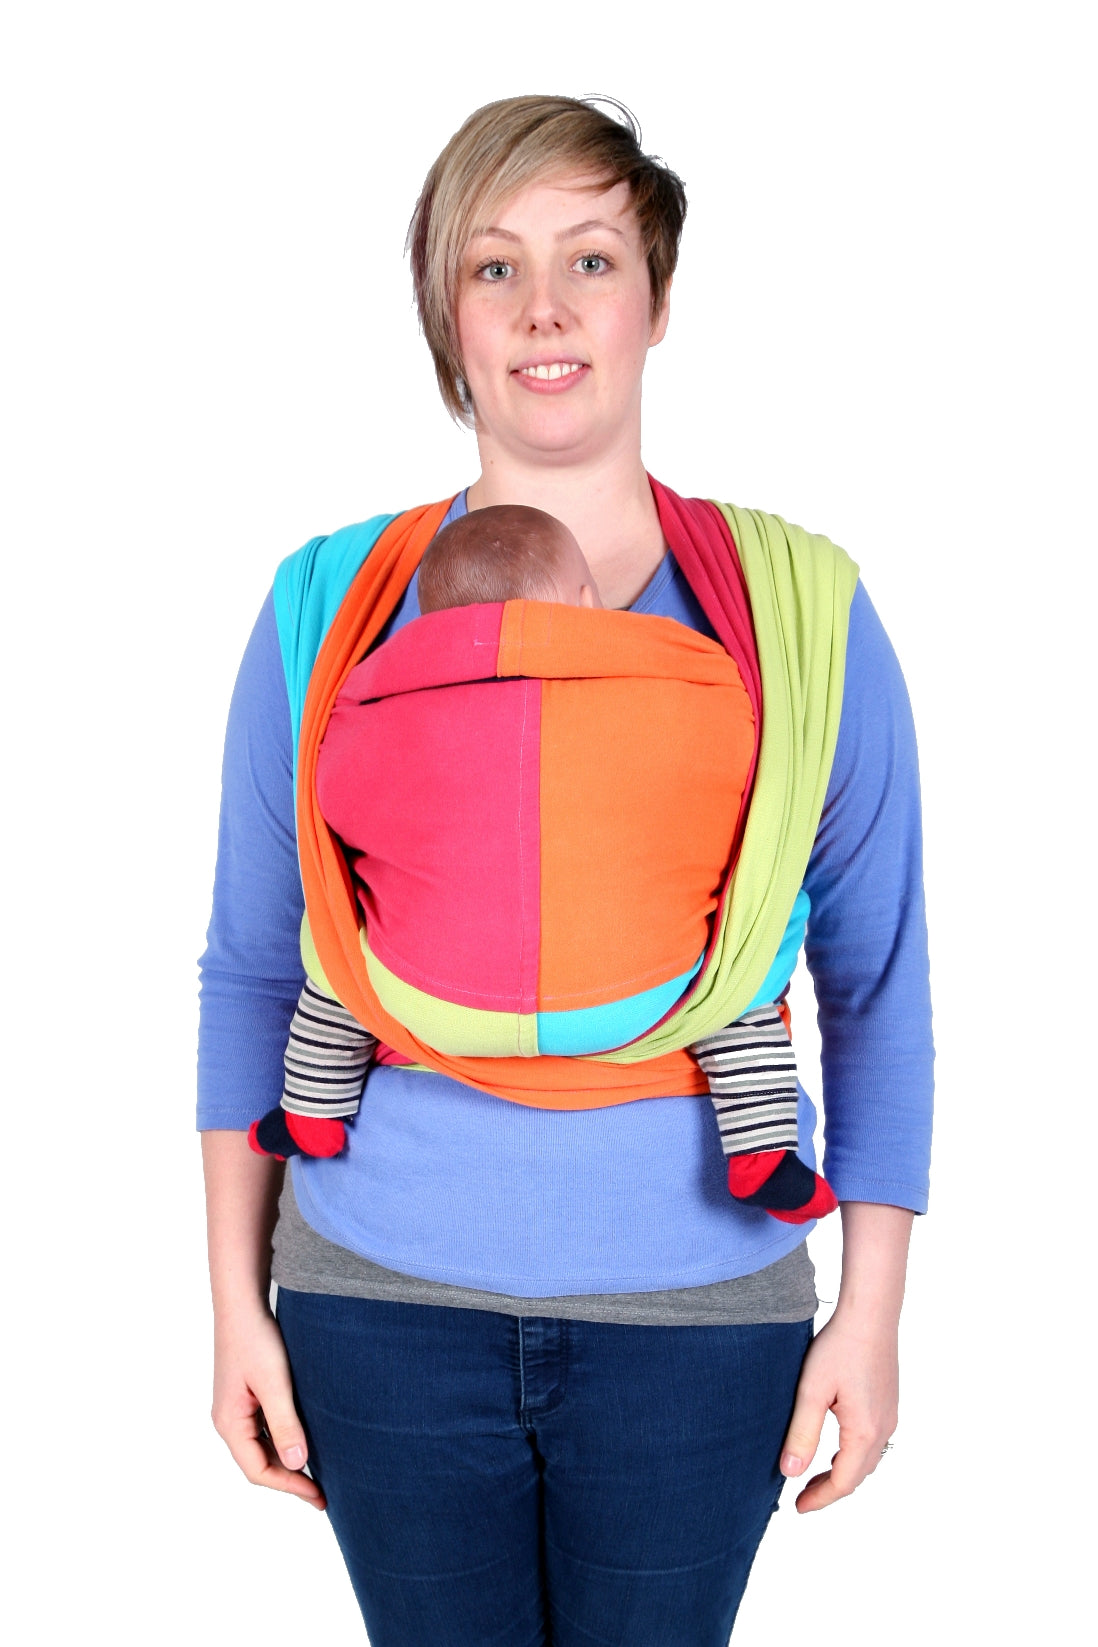 Global Tapestry - Inoshi Baby Carrier - Front Carry